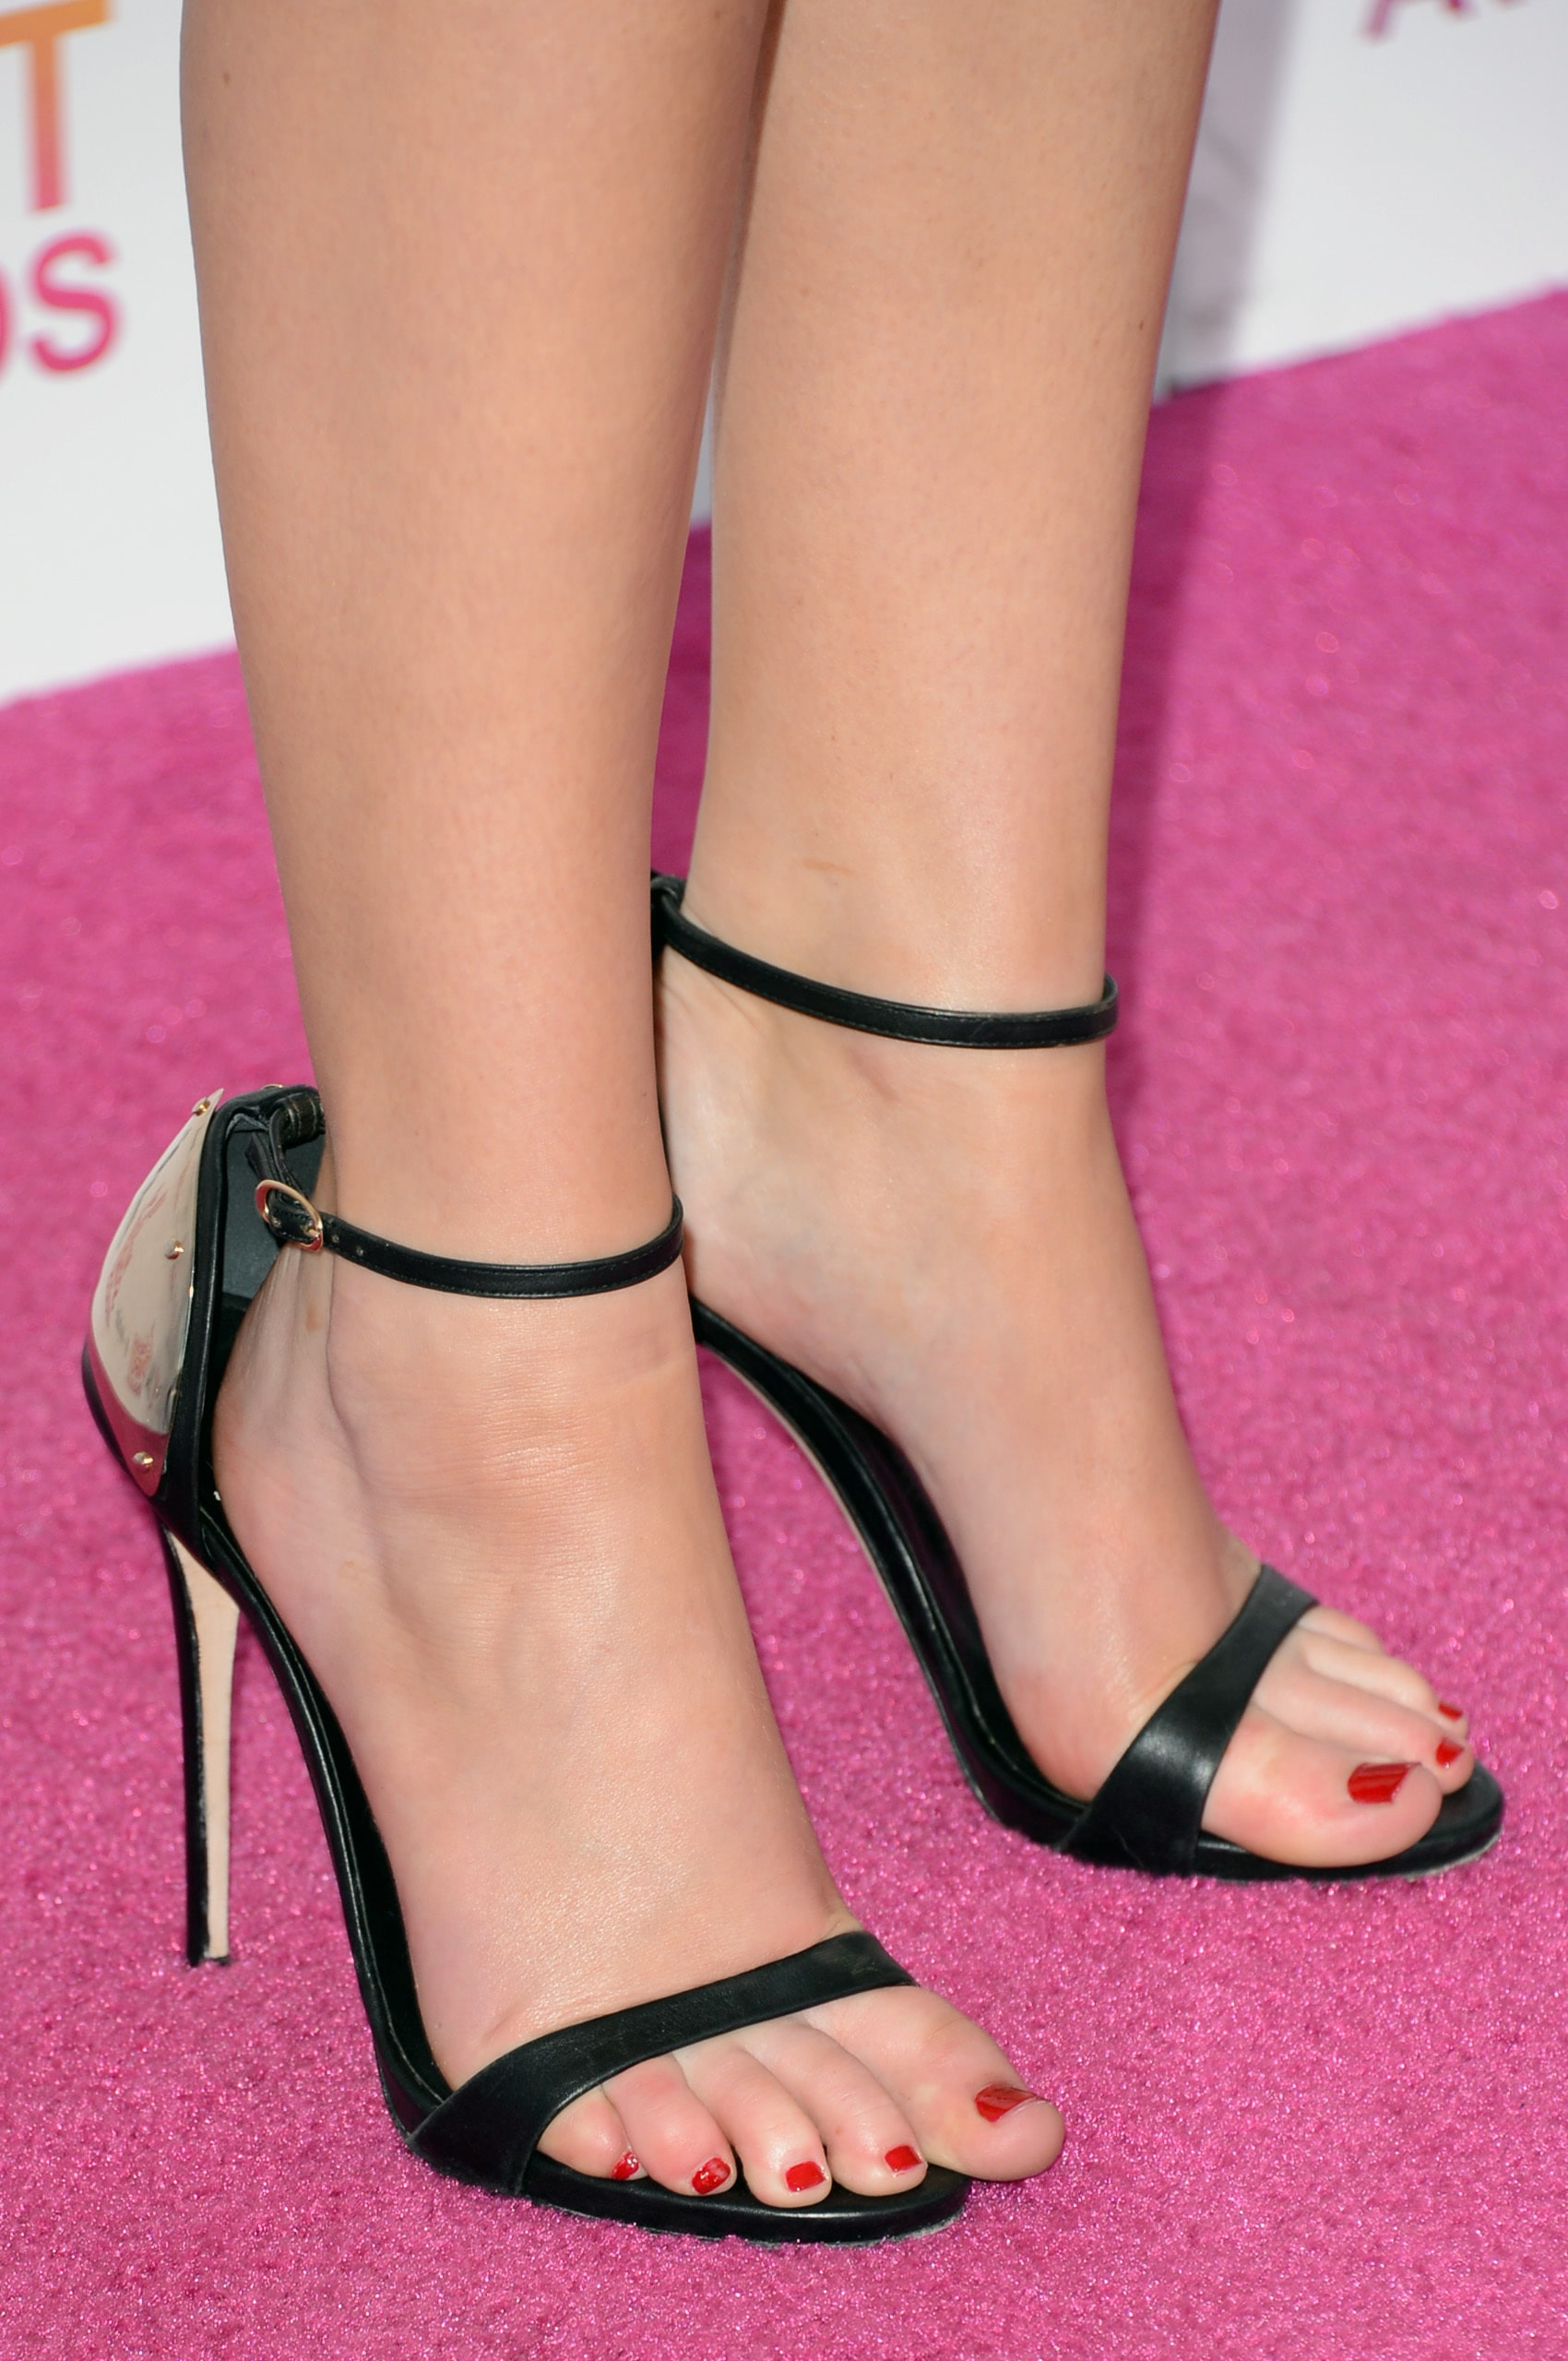 Jennifer Lawrence sexy feet pictures